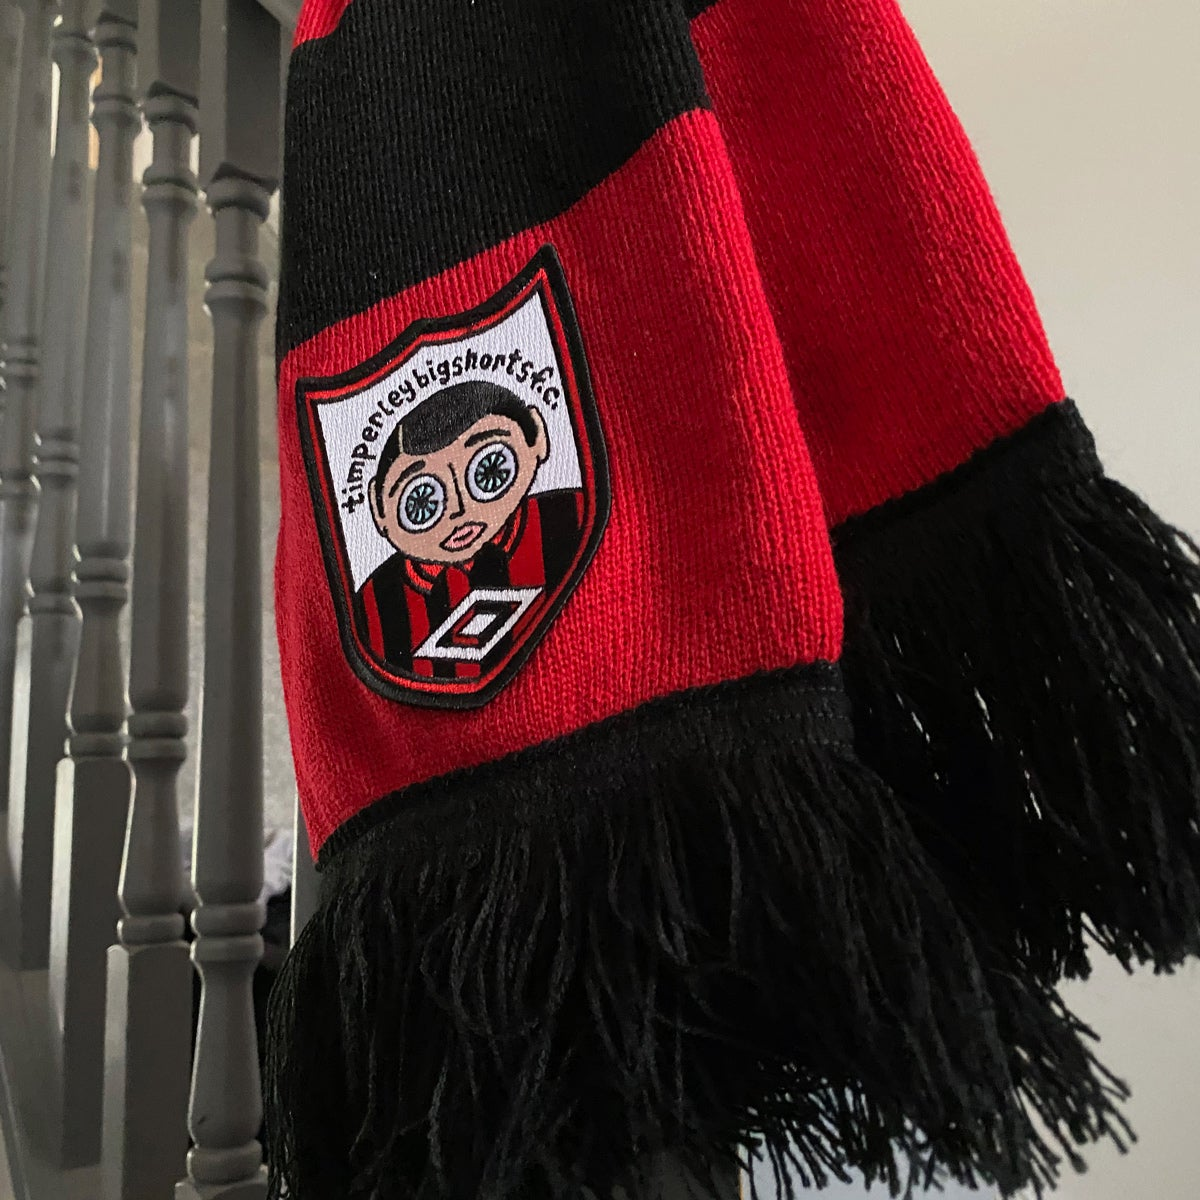 Image of Timperley Bigshorts Bar Scarf: BACK IN STOCK FOR XMAS!